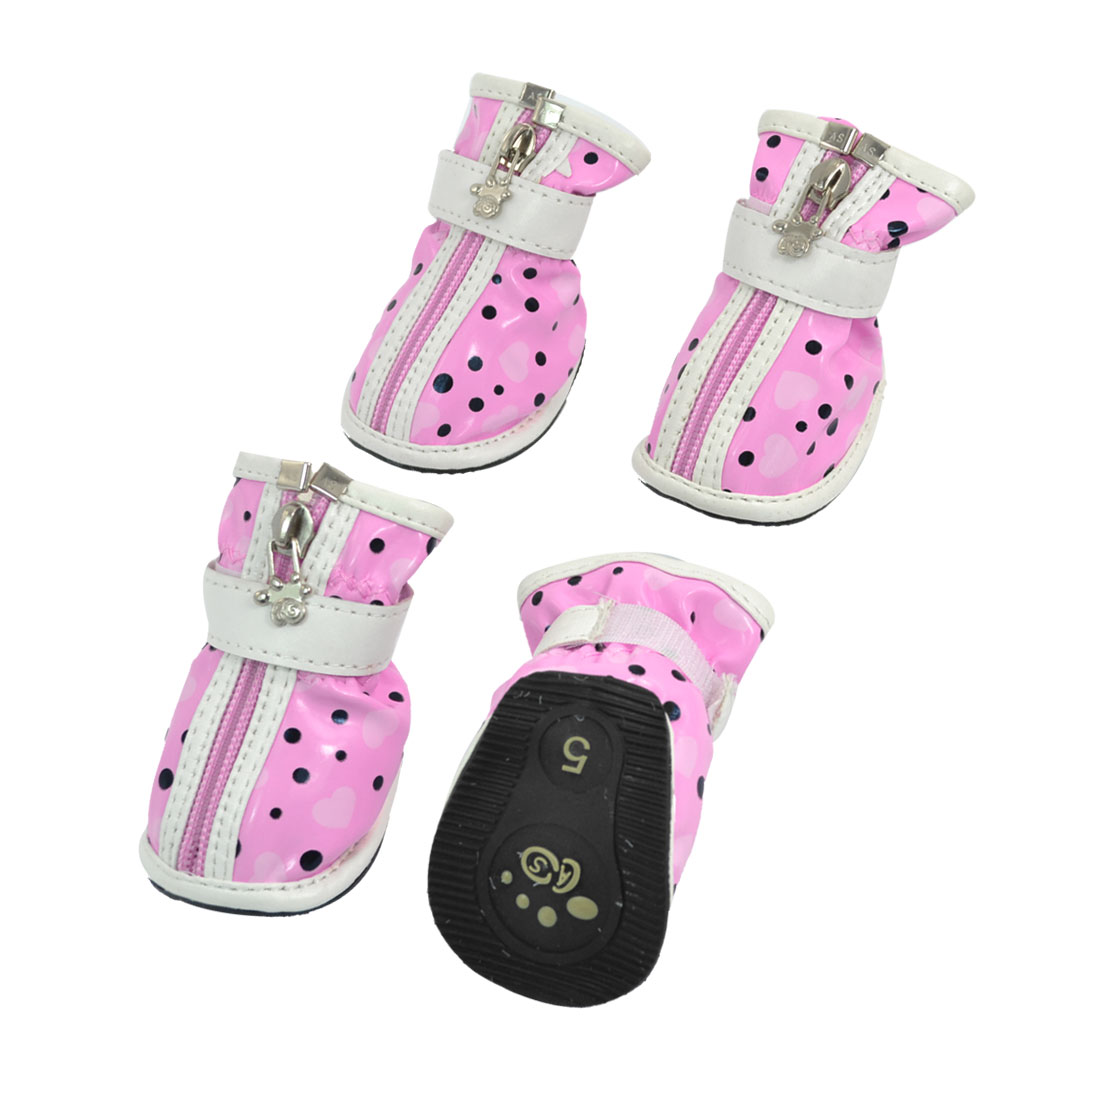 2 Pair Hook Loop Closure Zip Up Pet Poodle Doggy Shoes Boots Booties Pink White Size 5